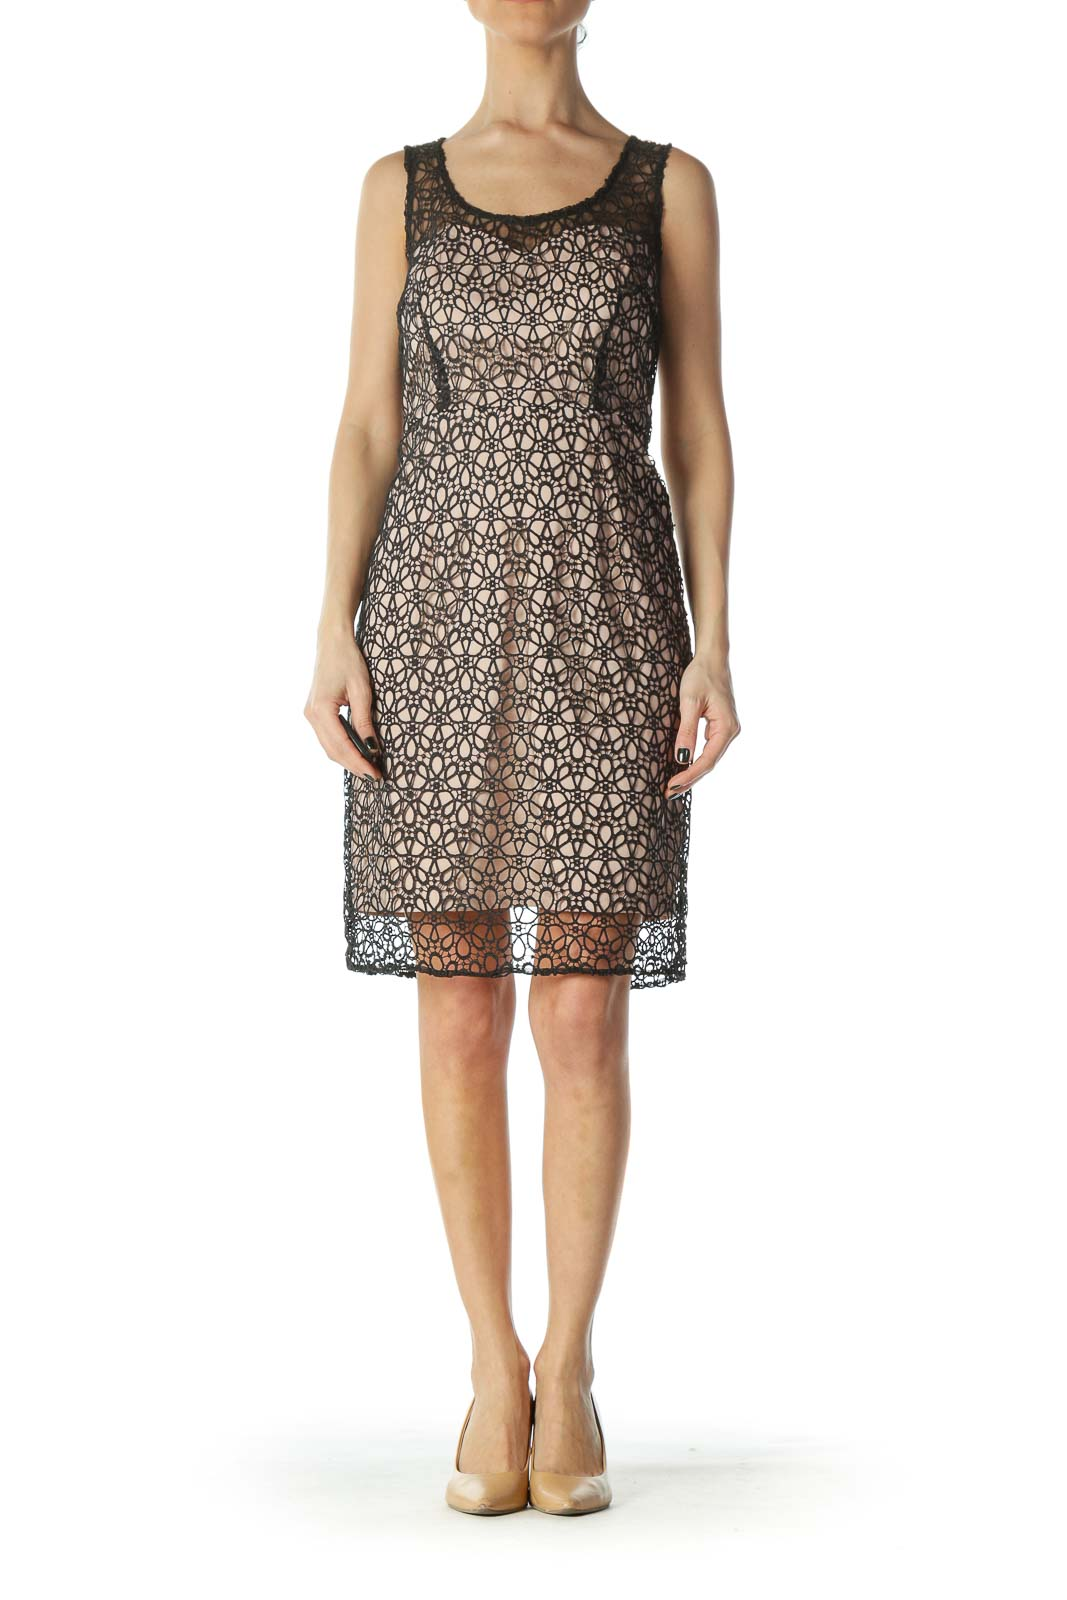 Pink and Black Eyelet Lace Dress